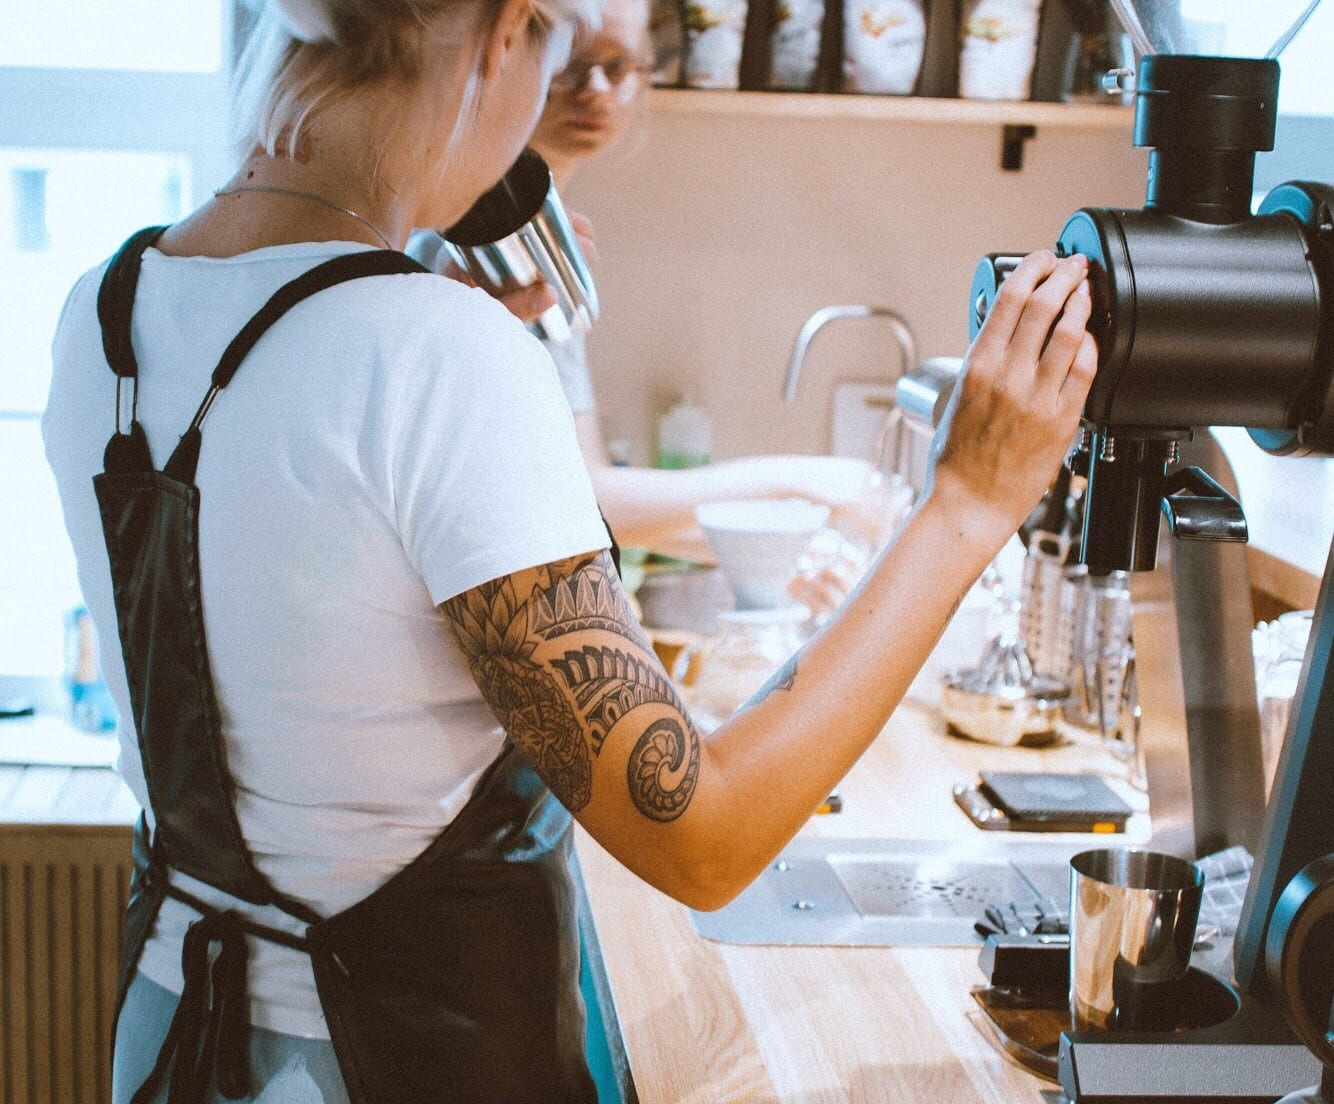 A barista is preparing a coffee for a customer